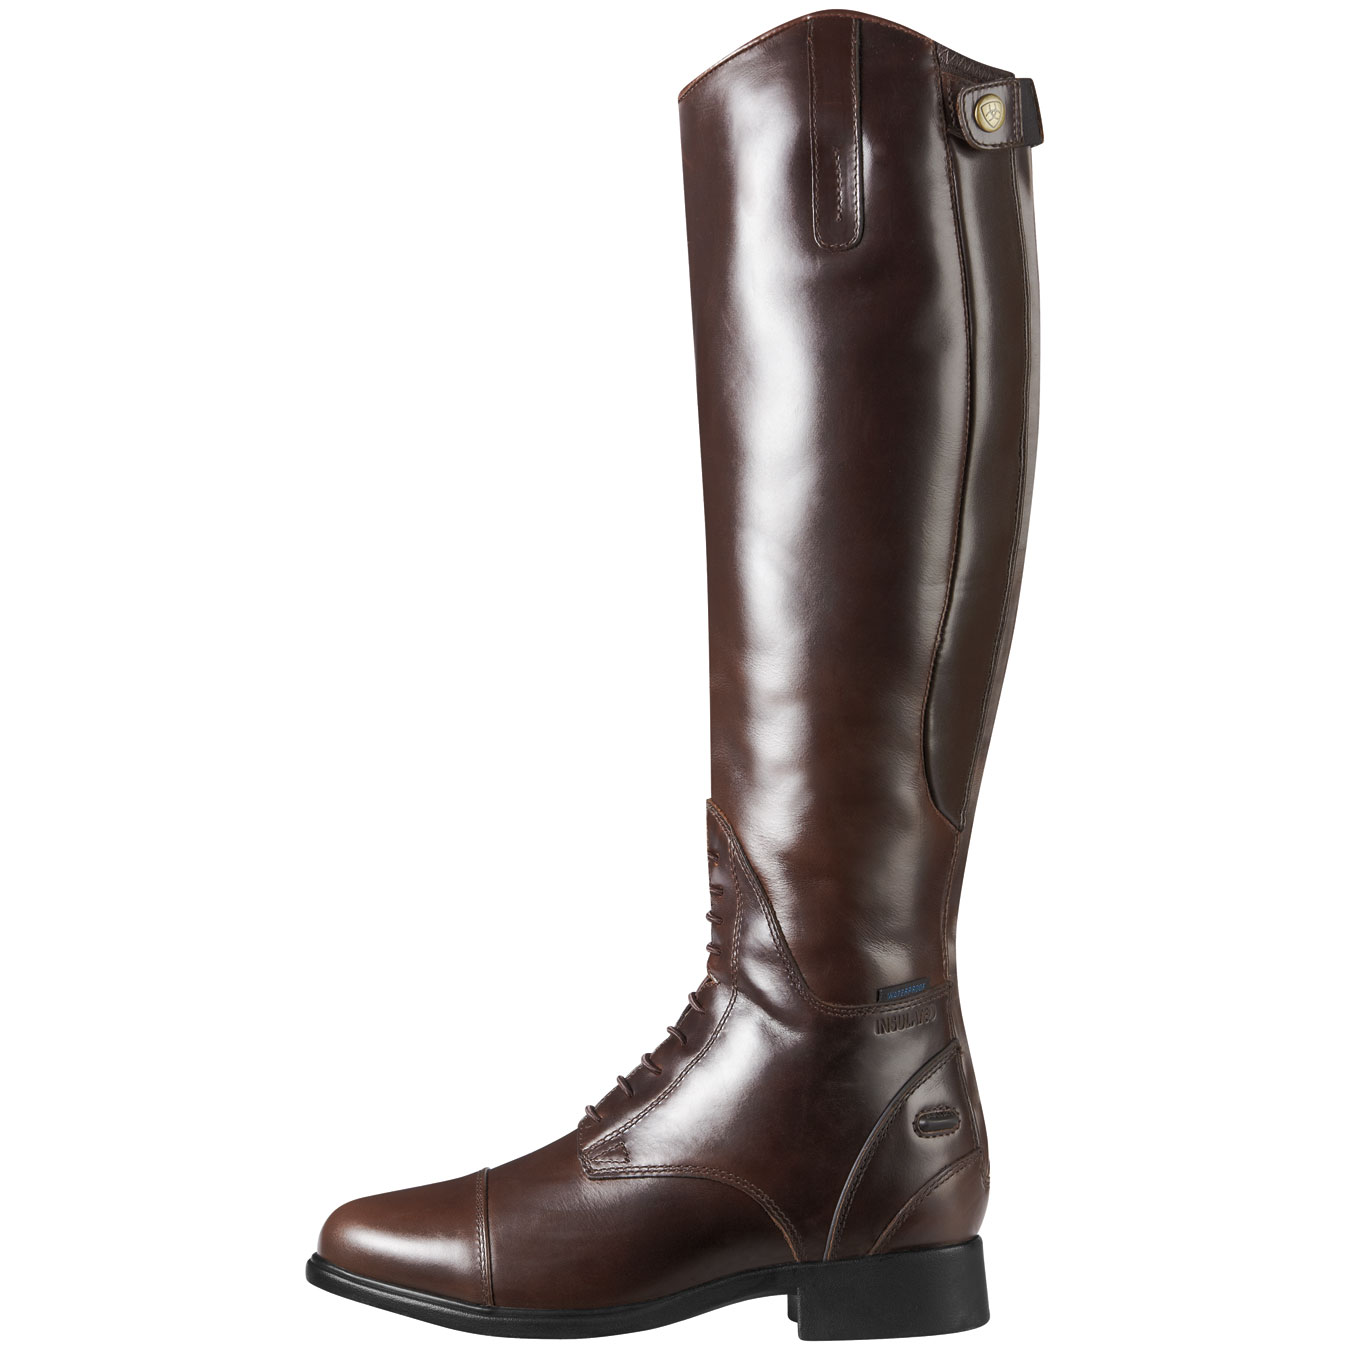 Ariat Bromont Tall H2o Non Insulated Womens Boots Waxed